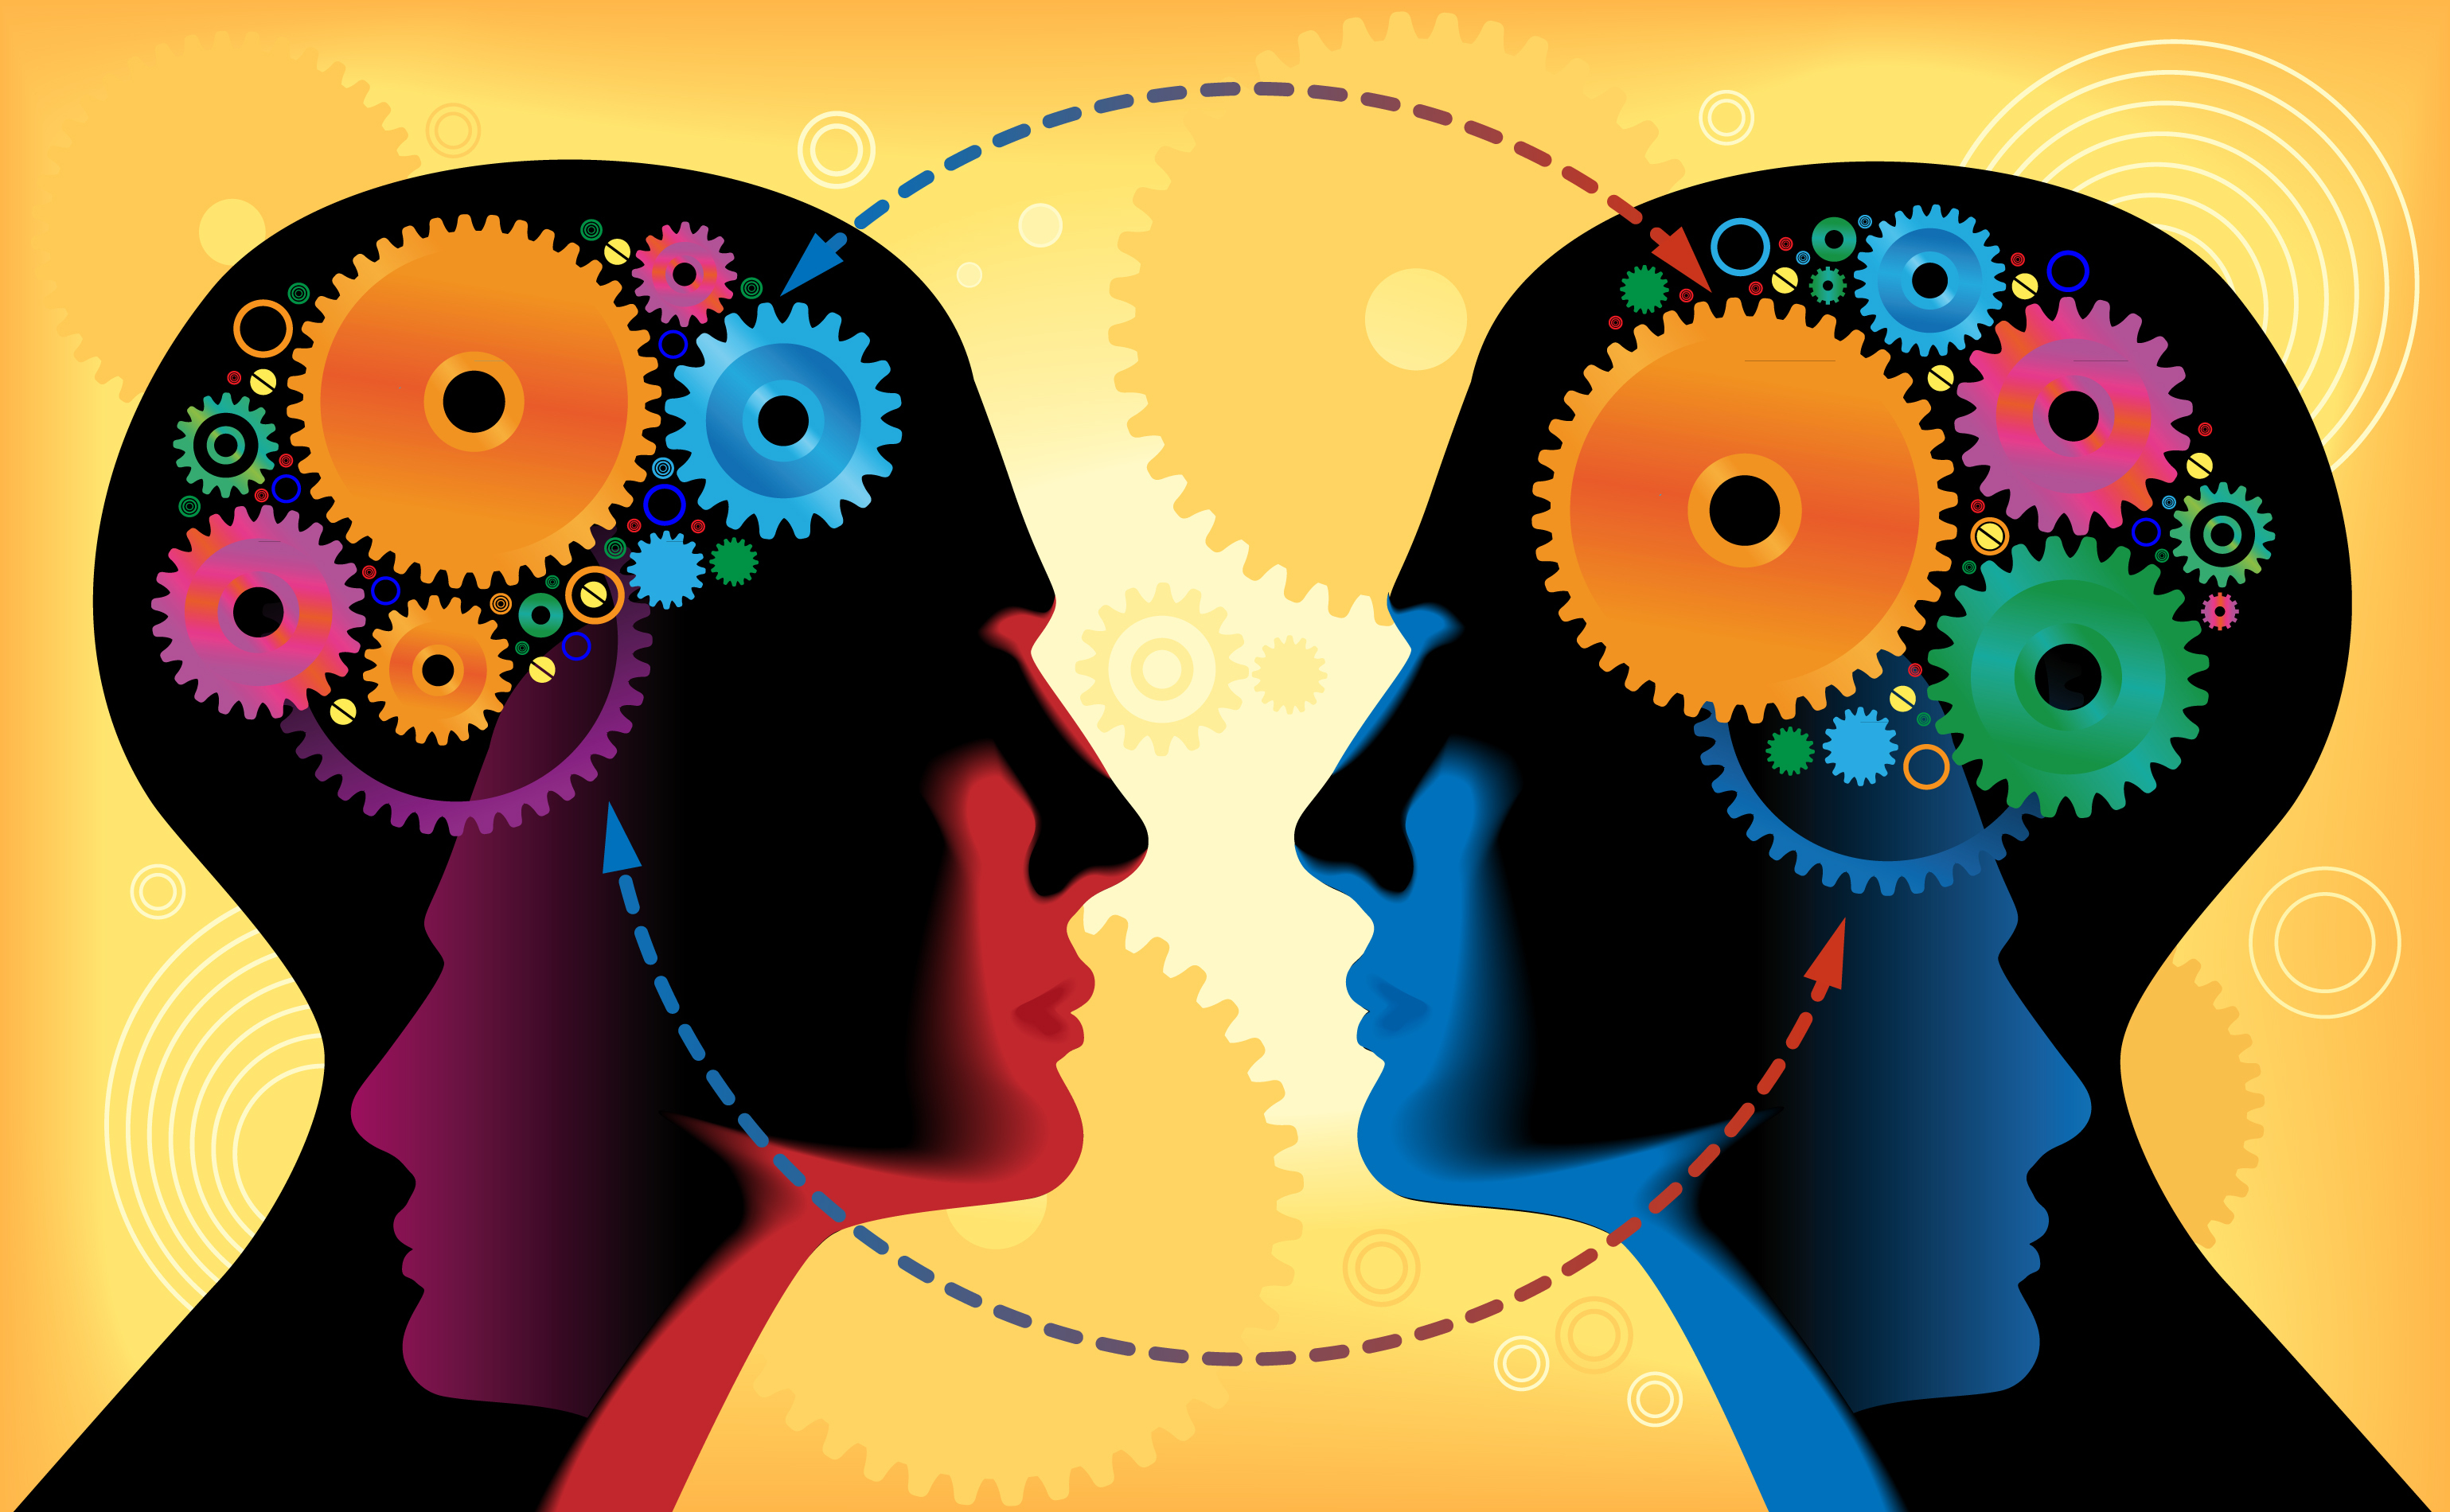 Verbal communication causes human brains to synchronize their activity, according to a new study.